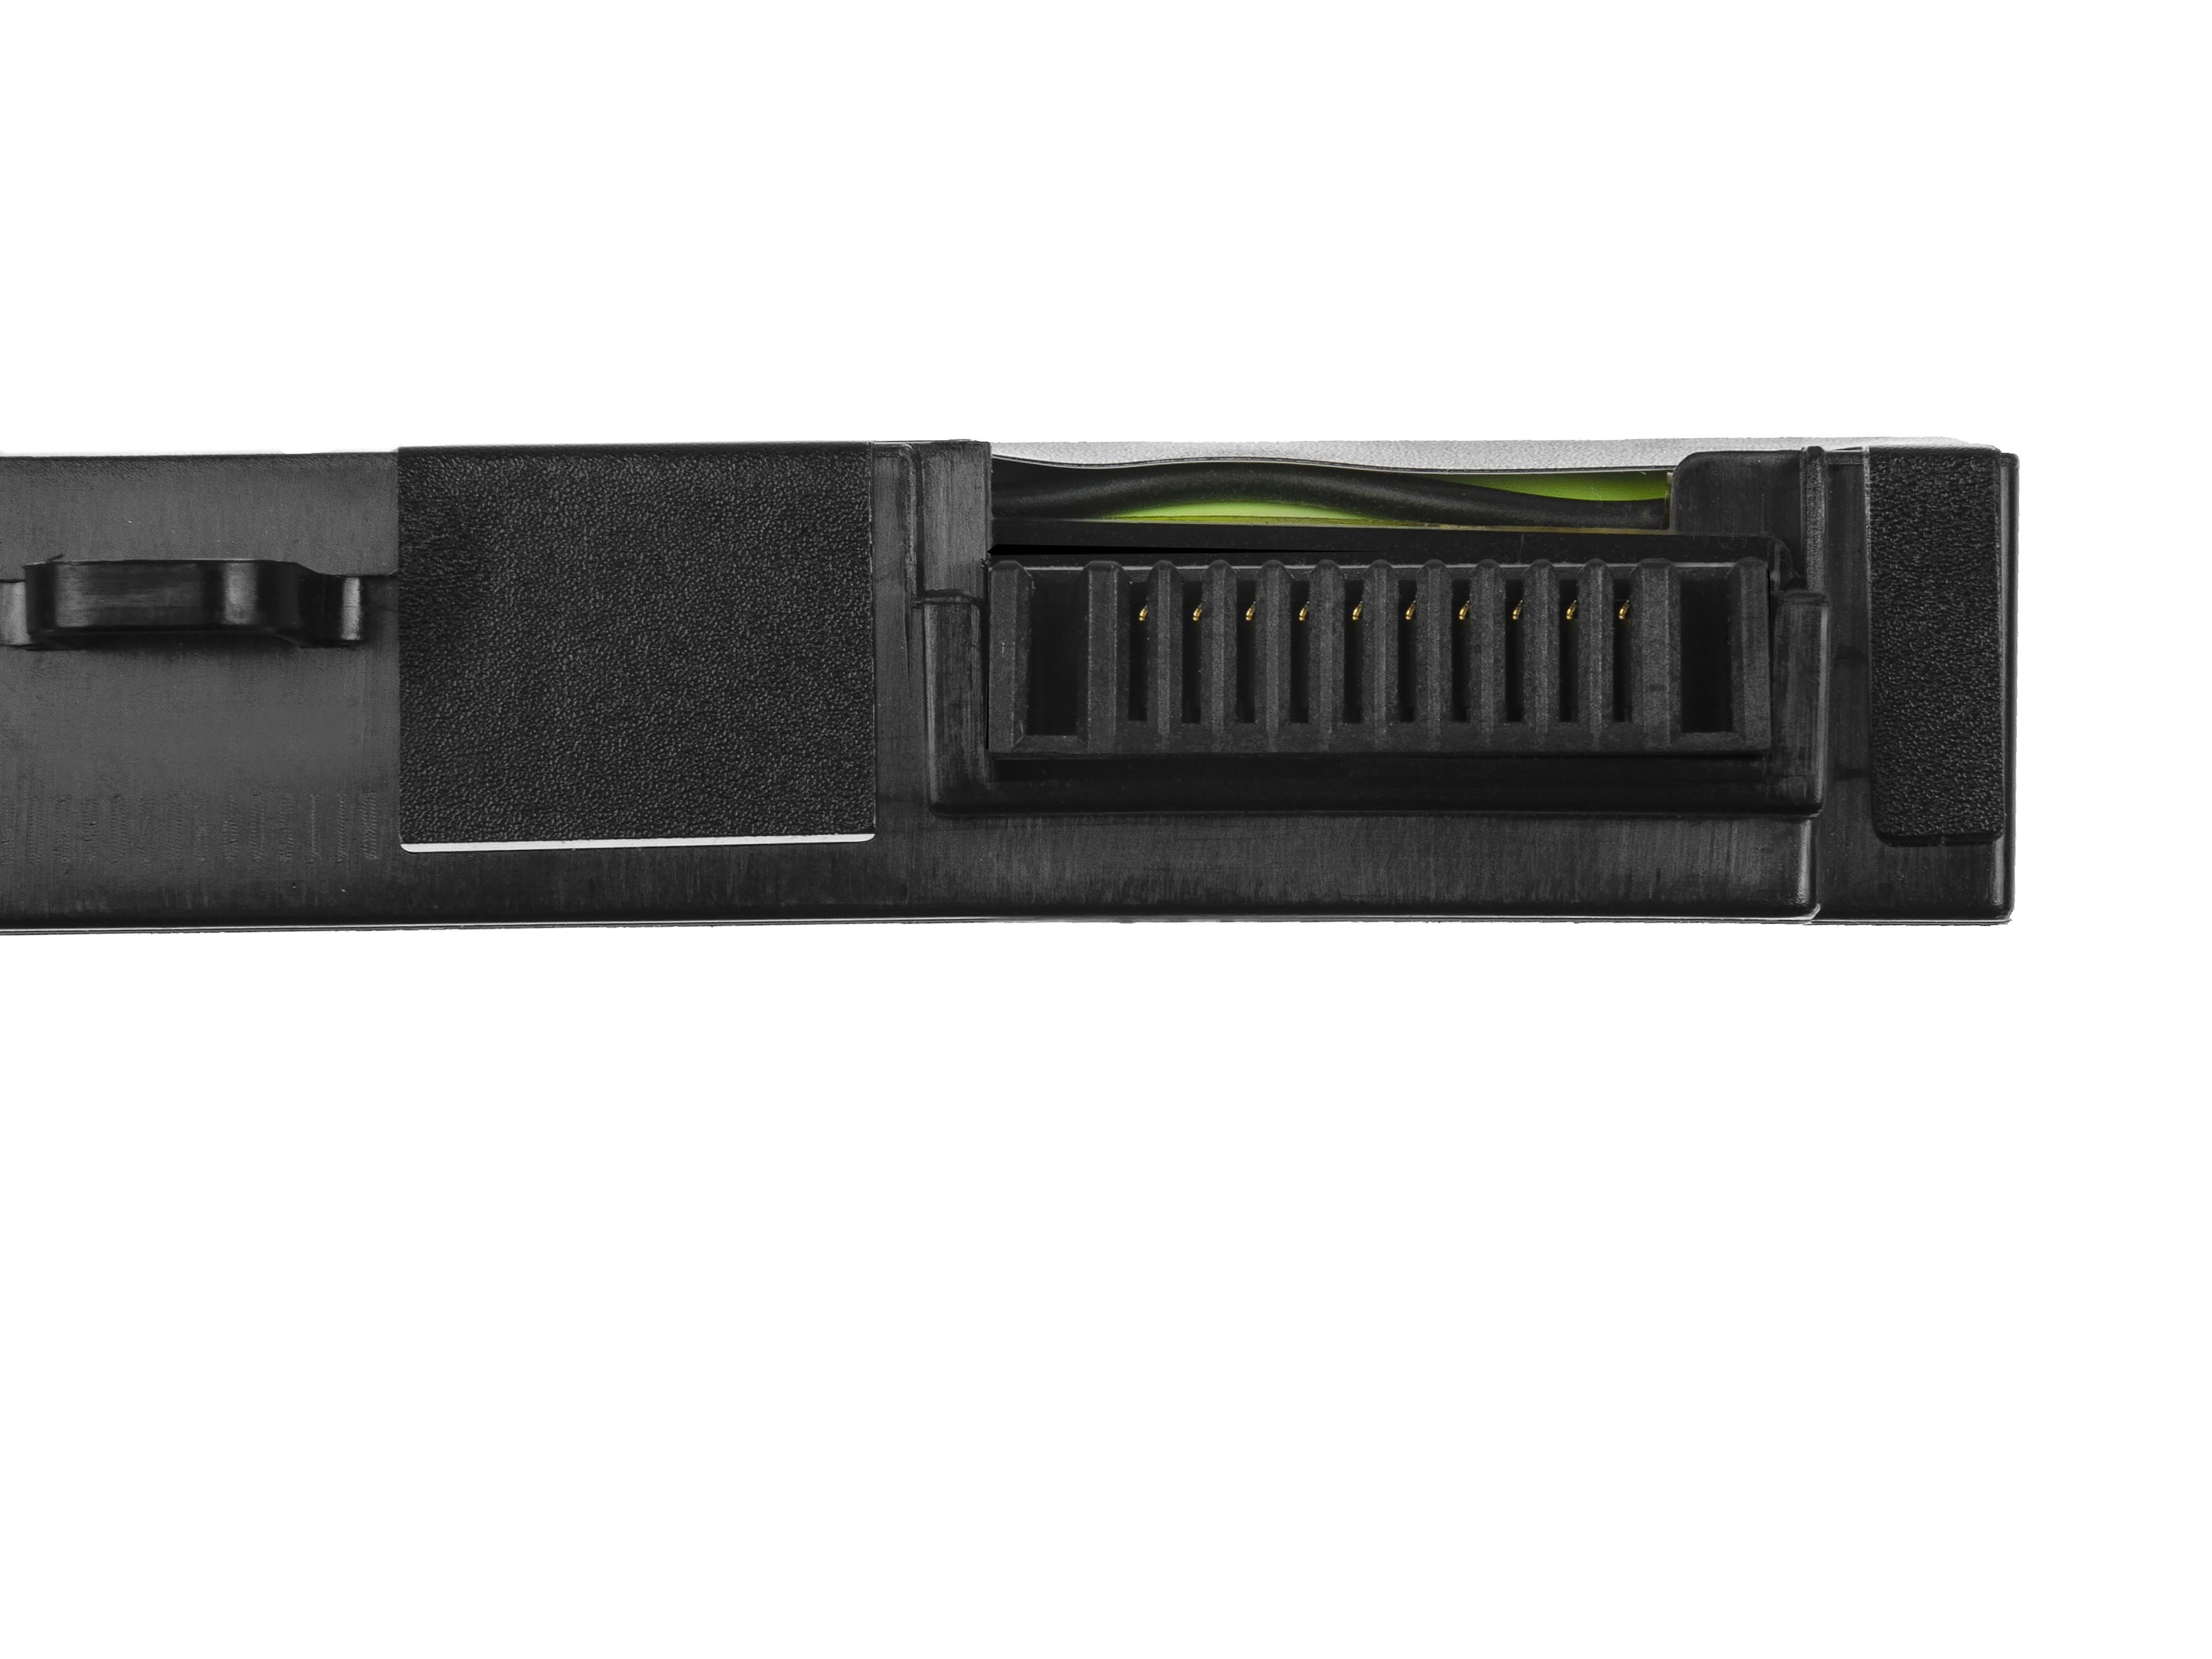 Laptop Battery Green Cell BTY-M6H for MSI GE62 GE63 GE72 GE73 GE75 GL62 GL63 GL73 GL65 GL72 GP62 GP63 GP72 GP73 GV62 GV72 PE60 P